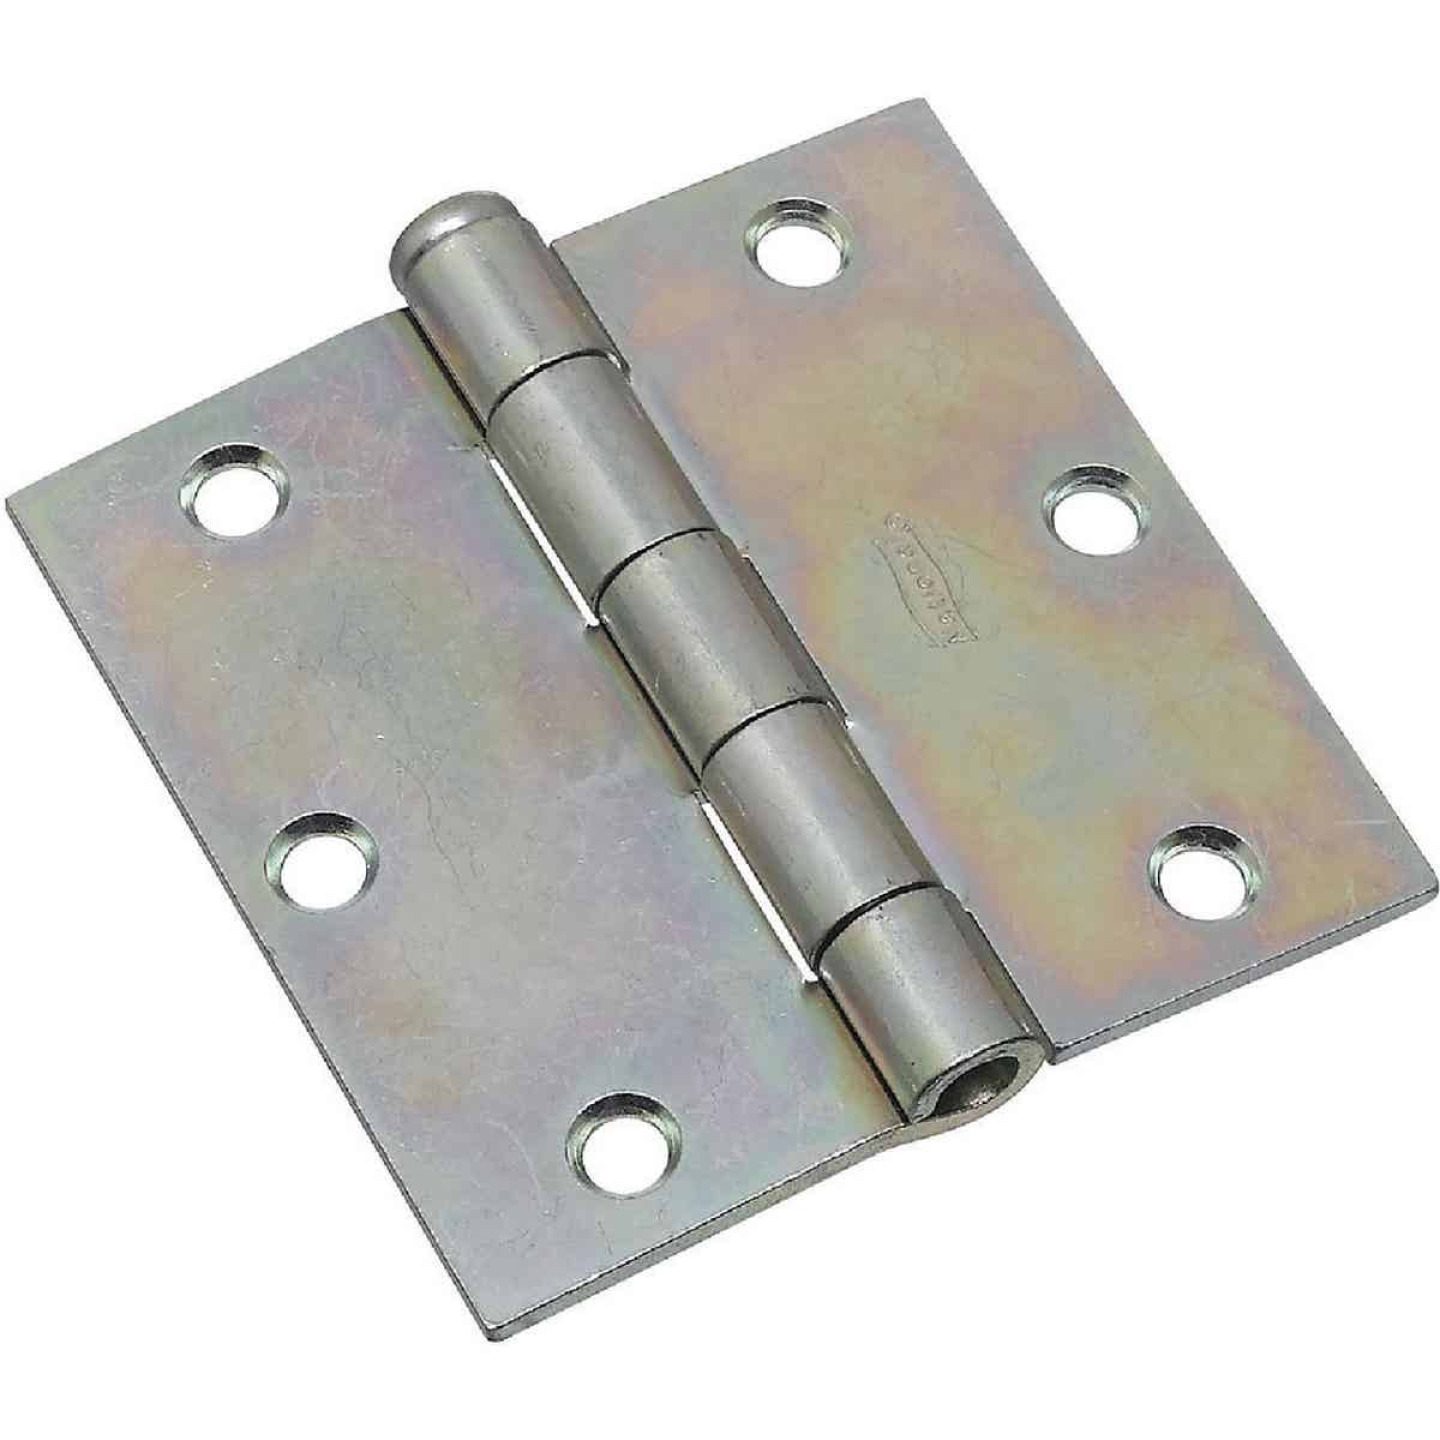 National 3-1/2 In. Square Zinc Plated Steel Broad Door Hinge (2-Pack) Image 1